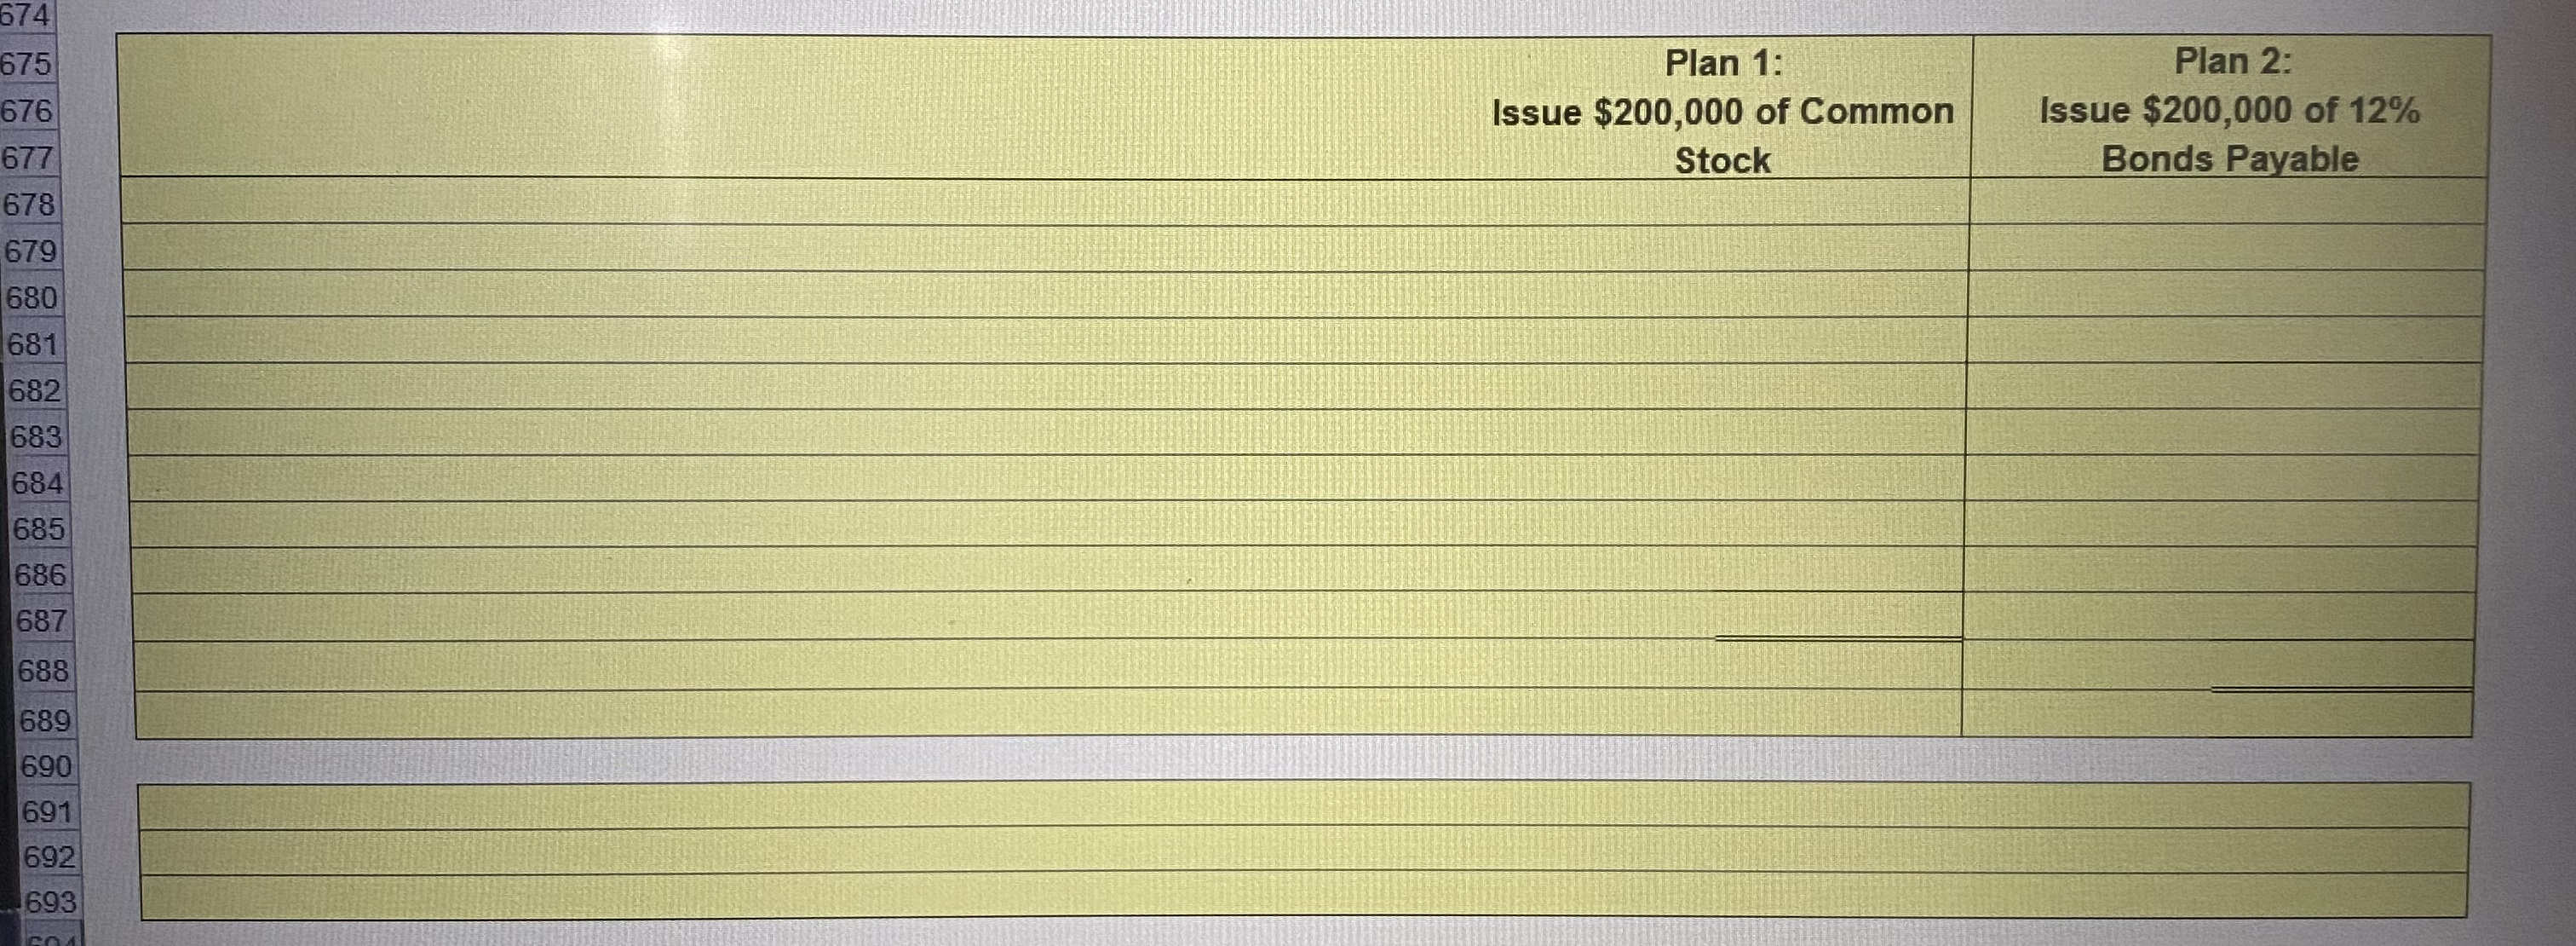 674 Plan 2: Plan 1: 675 676 Issue $200,000 of 12% Bonds Payable Issue $200,000 of Common 677 678 Stock 679 680 681 682 683 684 685 686 687 688 689 690 691 692 693